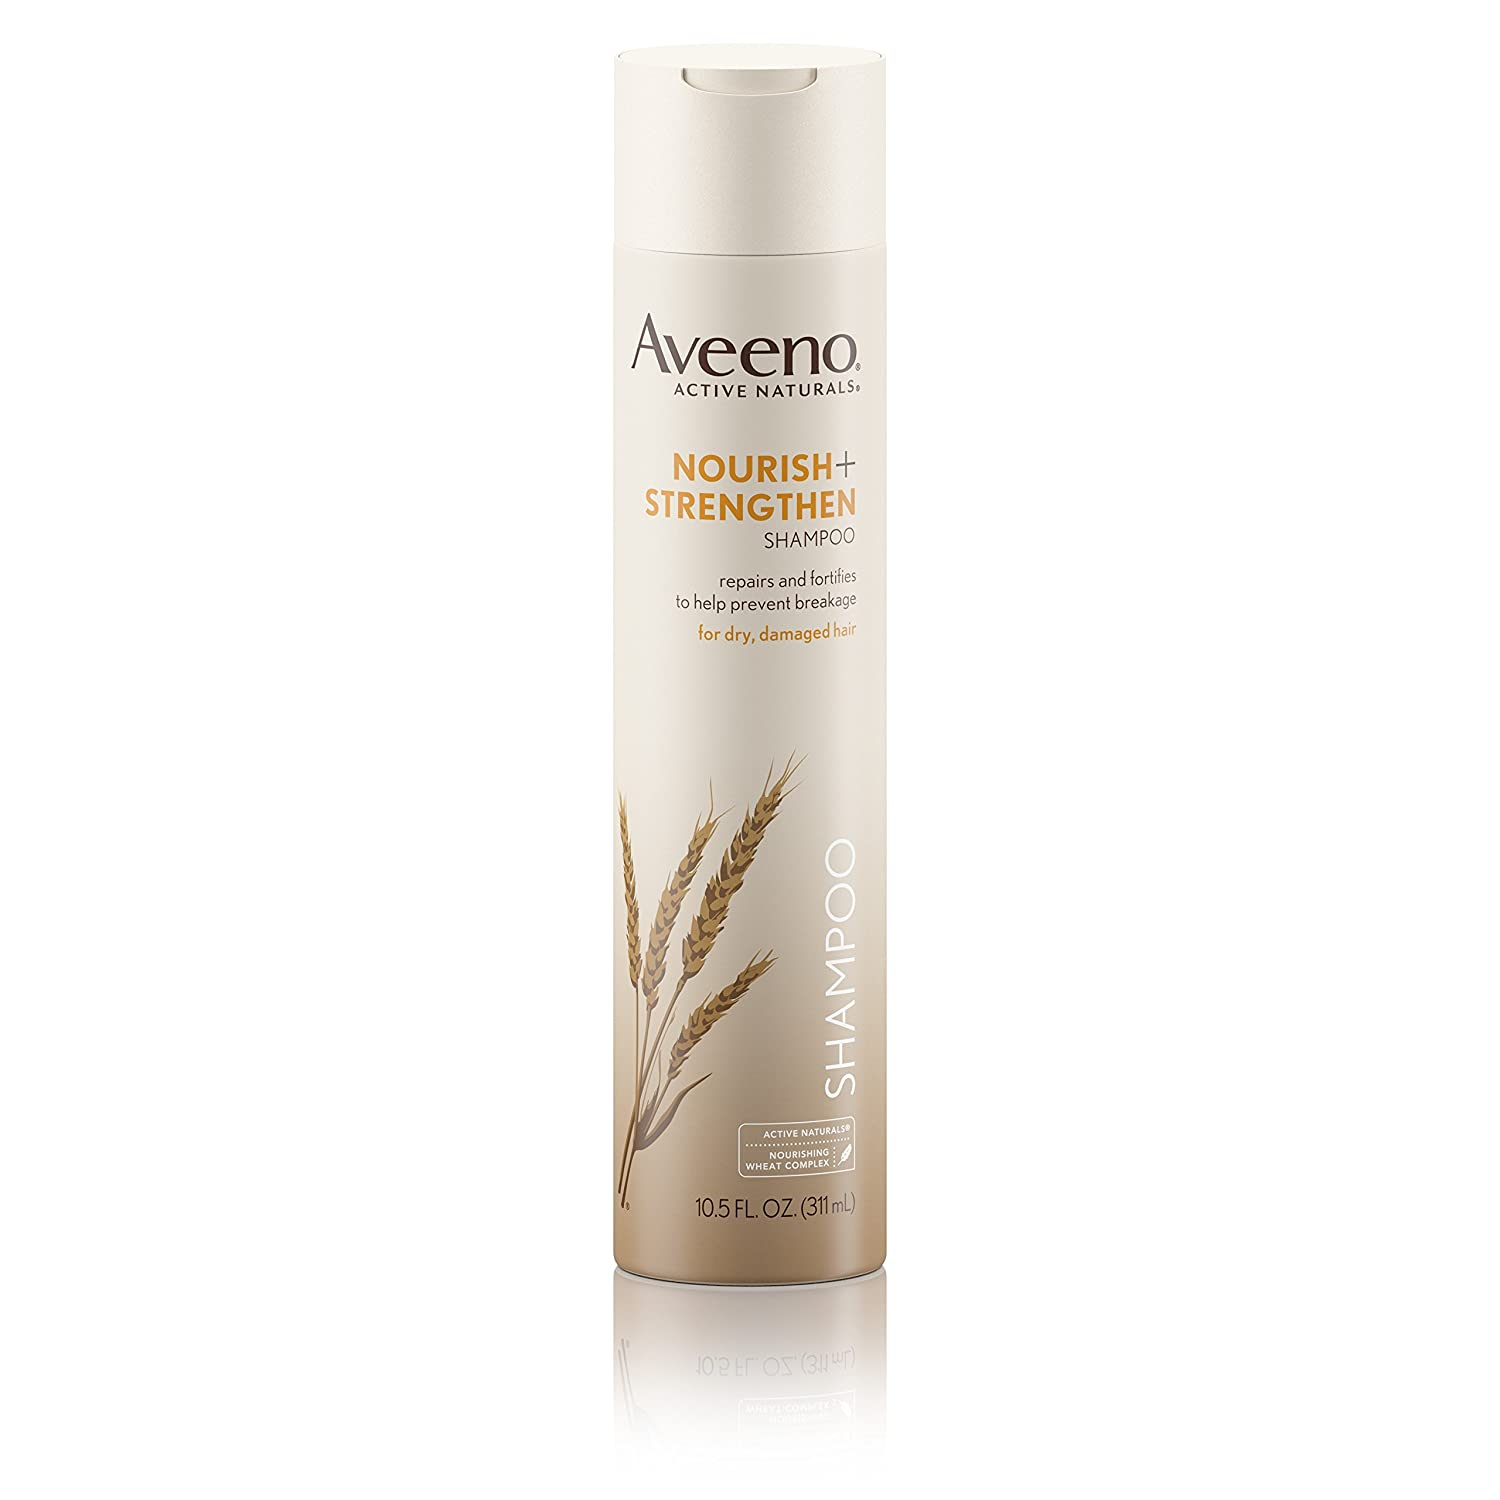 Aveeno Nourish+ Strengthen Shampoo For Damaged Hair, 10.5 Fl. Oz, pack 0f 2